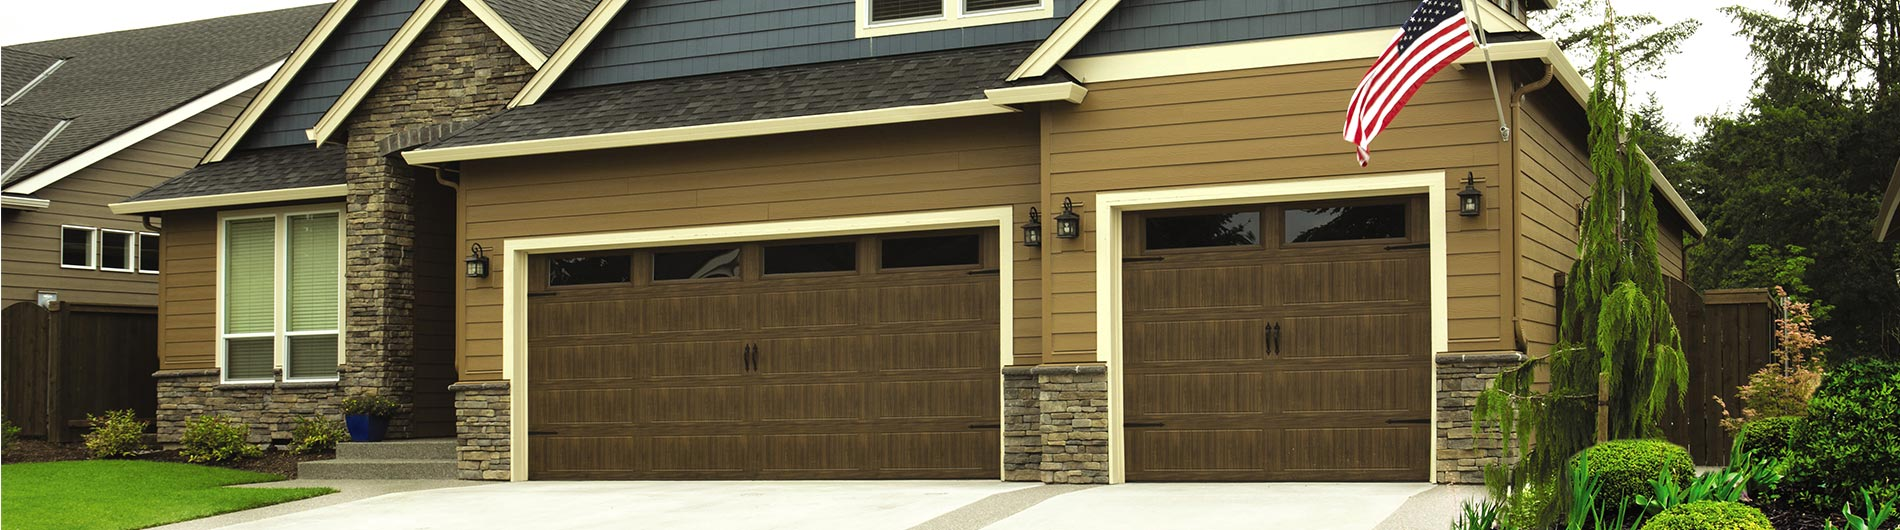 Steel garage doors for Wayne dalton garage doors